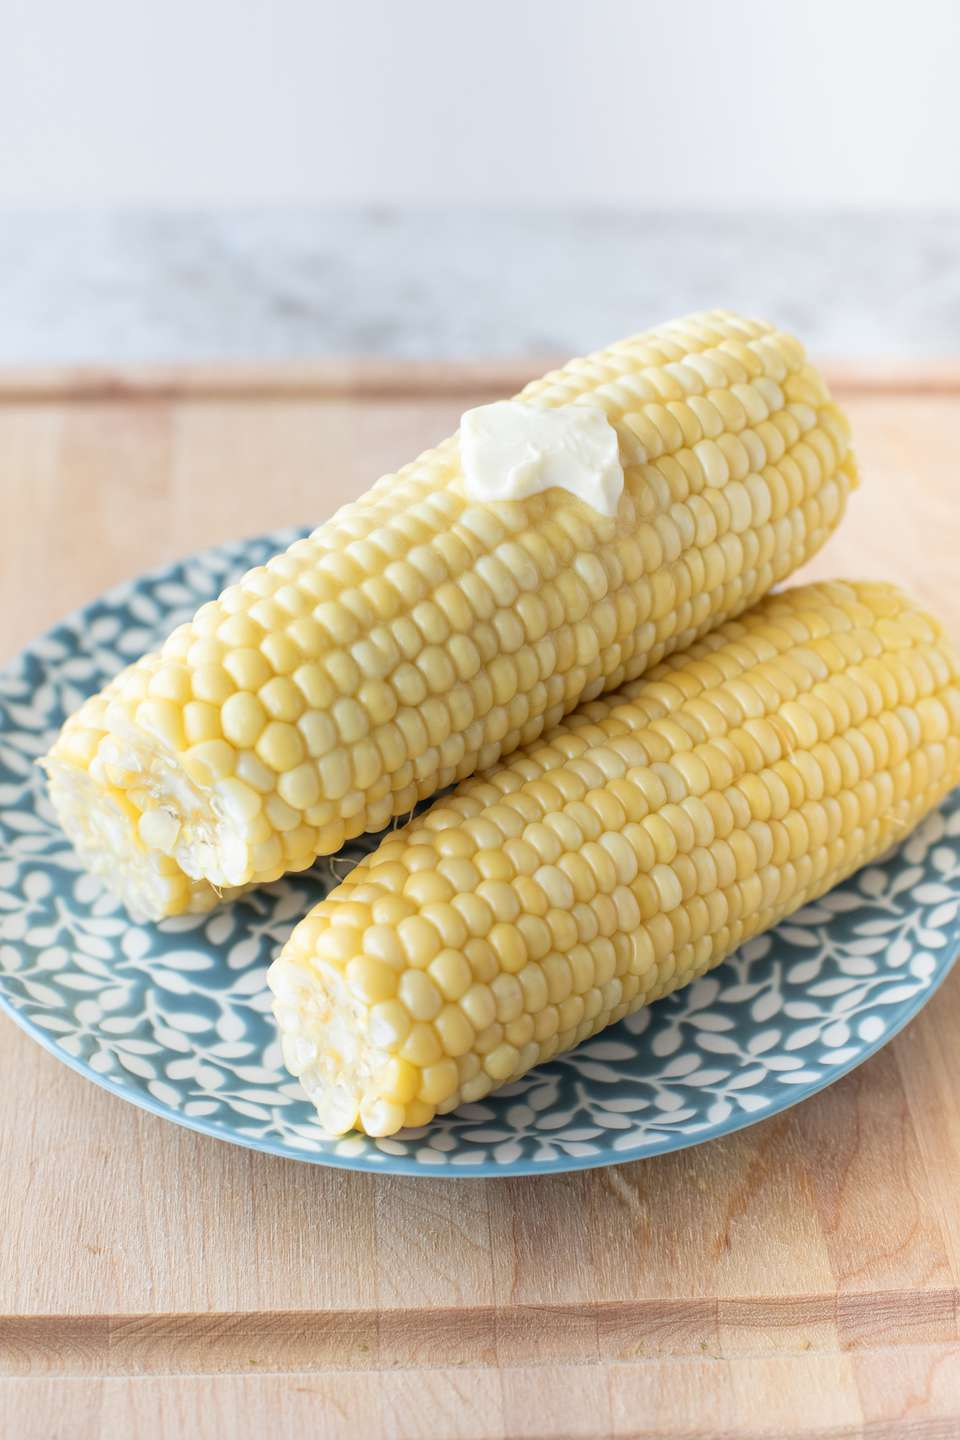 Cooked corn on the cob ears with a pat of butter on a blue flower plate